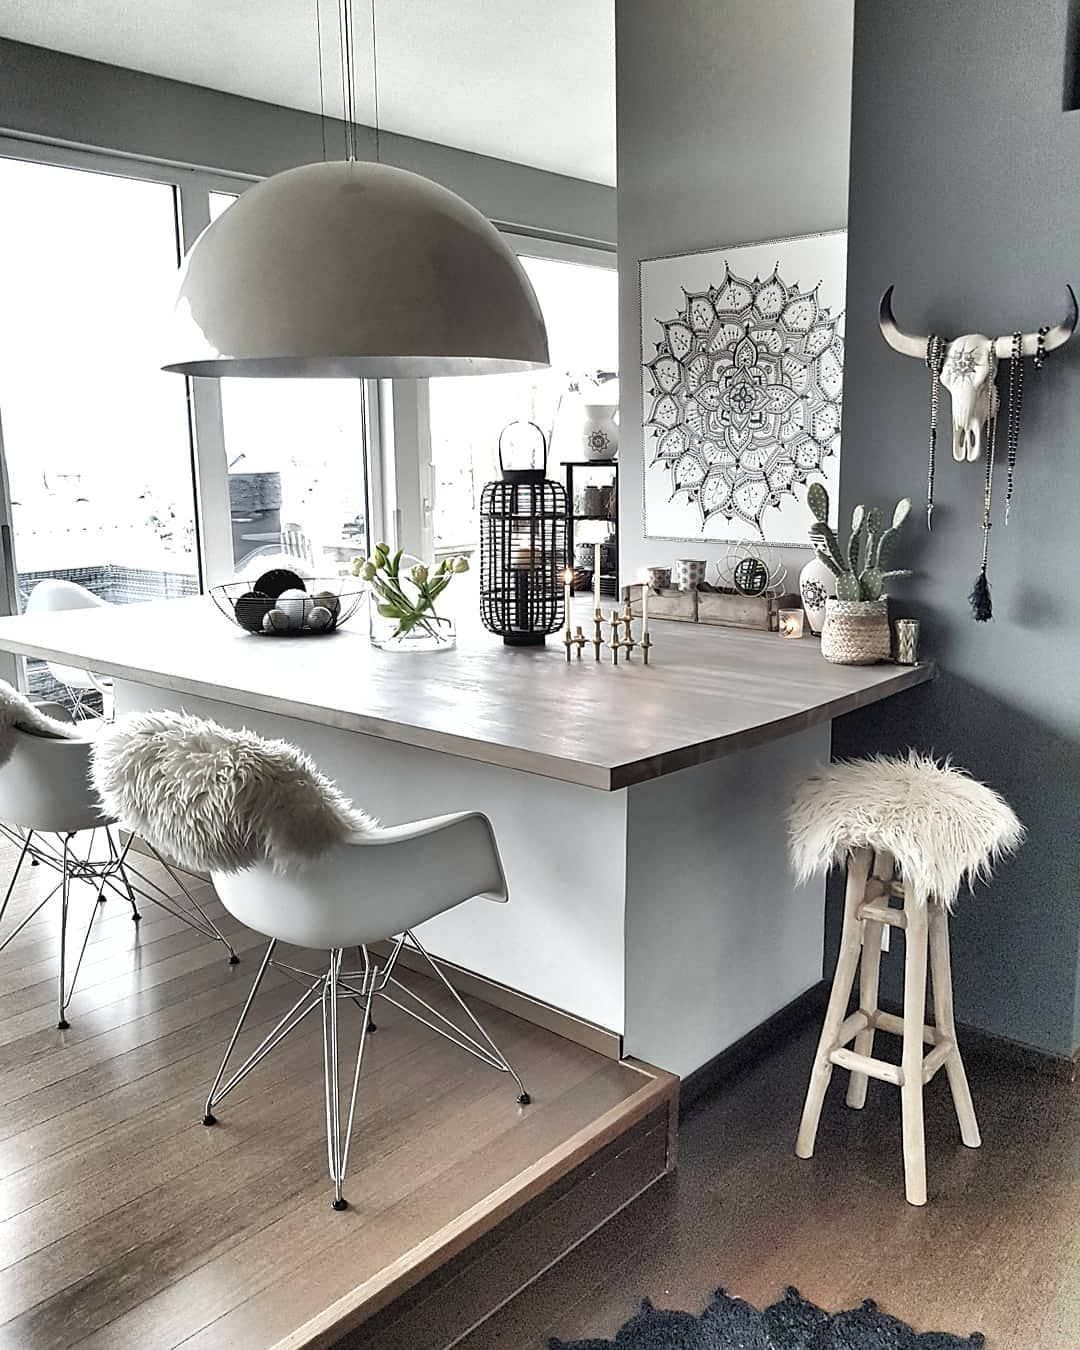 Scandinavian Decorideas: What Do You Think About This Scandinavian Style? Love That